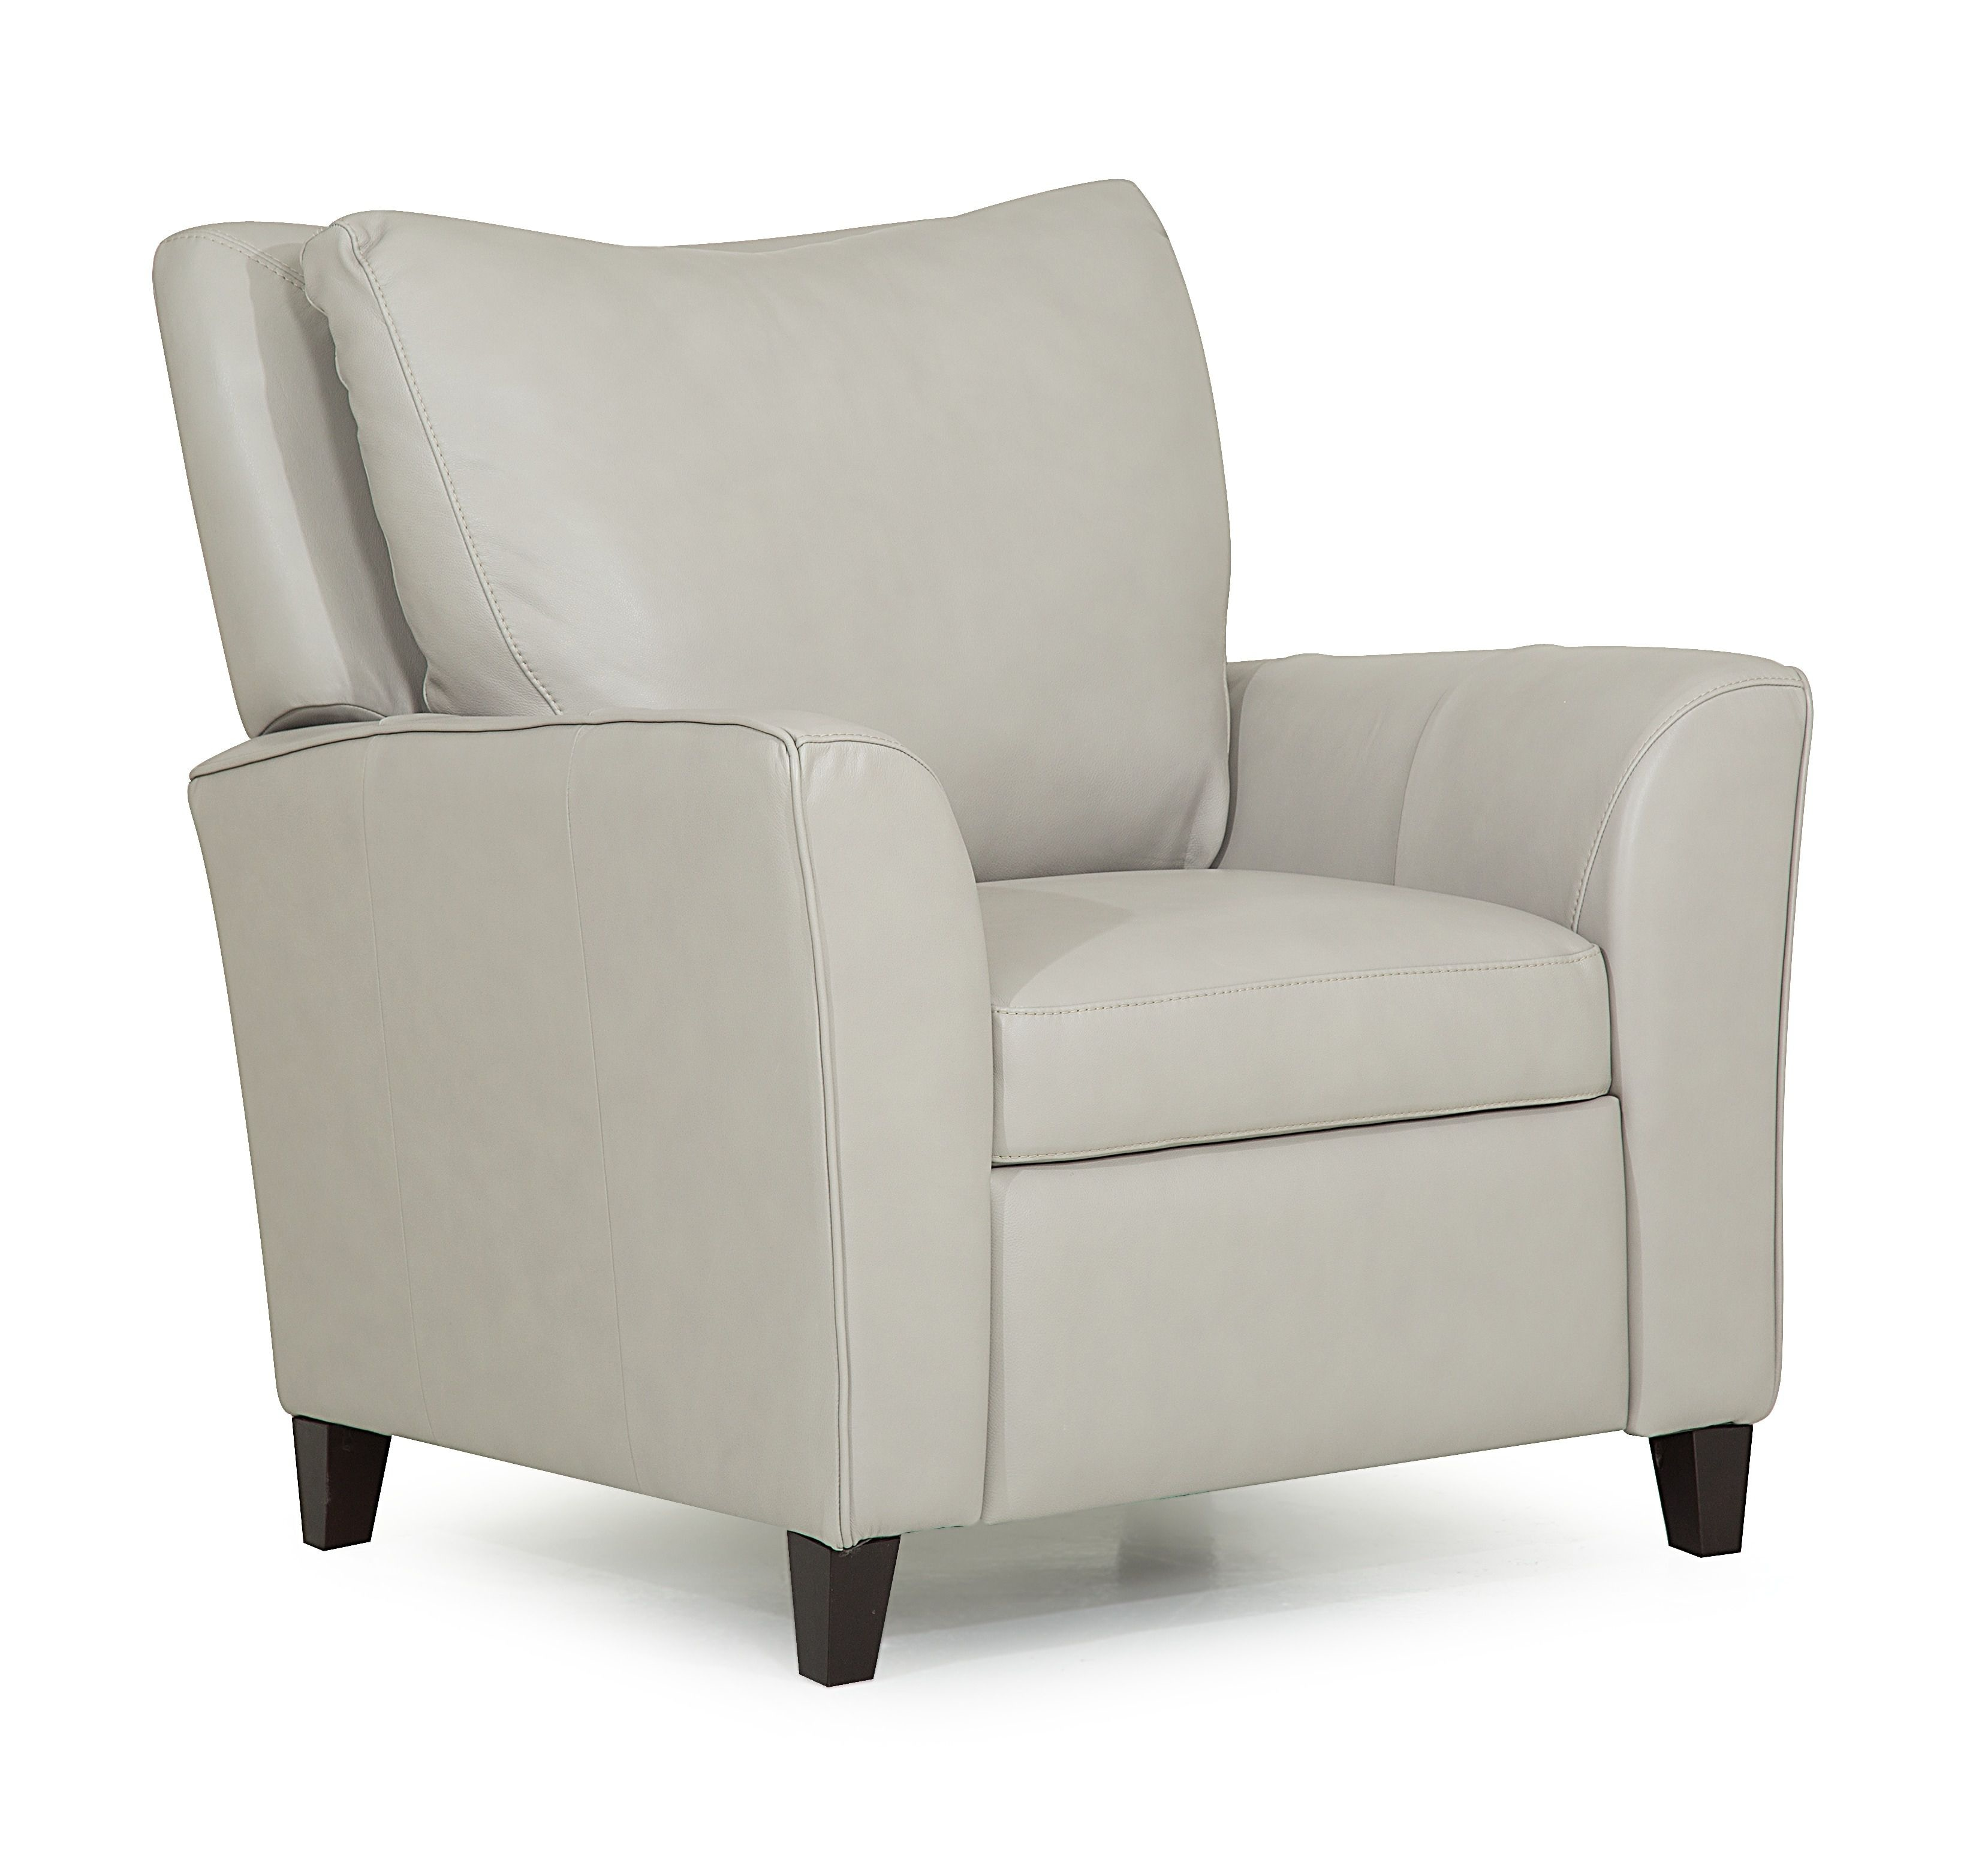 push back chair fisher price luv u zoo high palliser furniture living room pushback 77287 62 today s